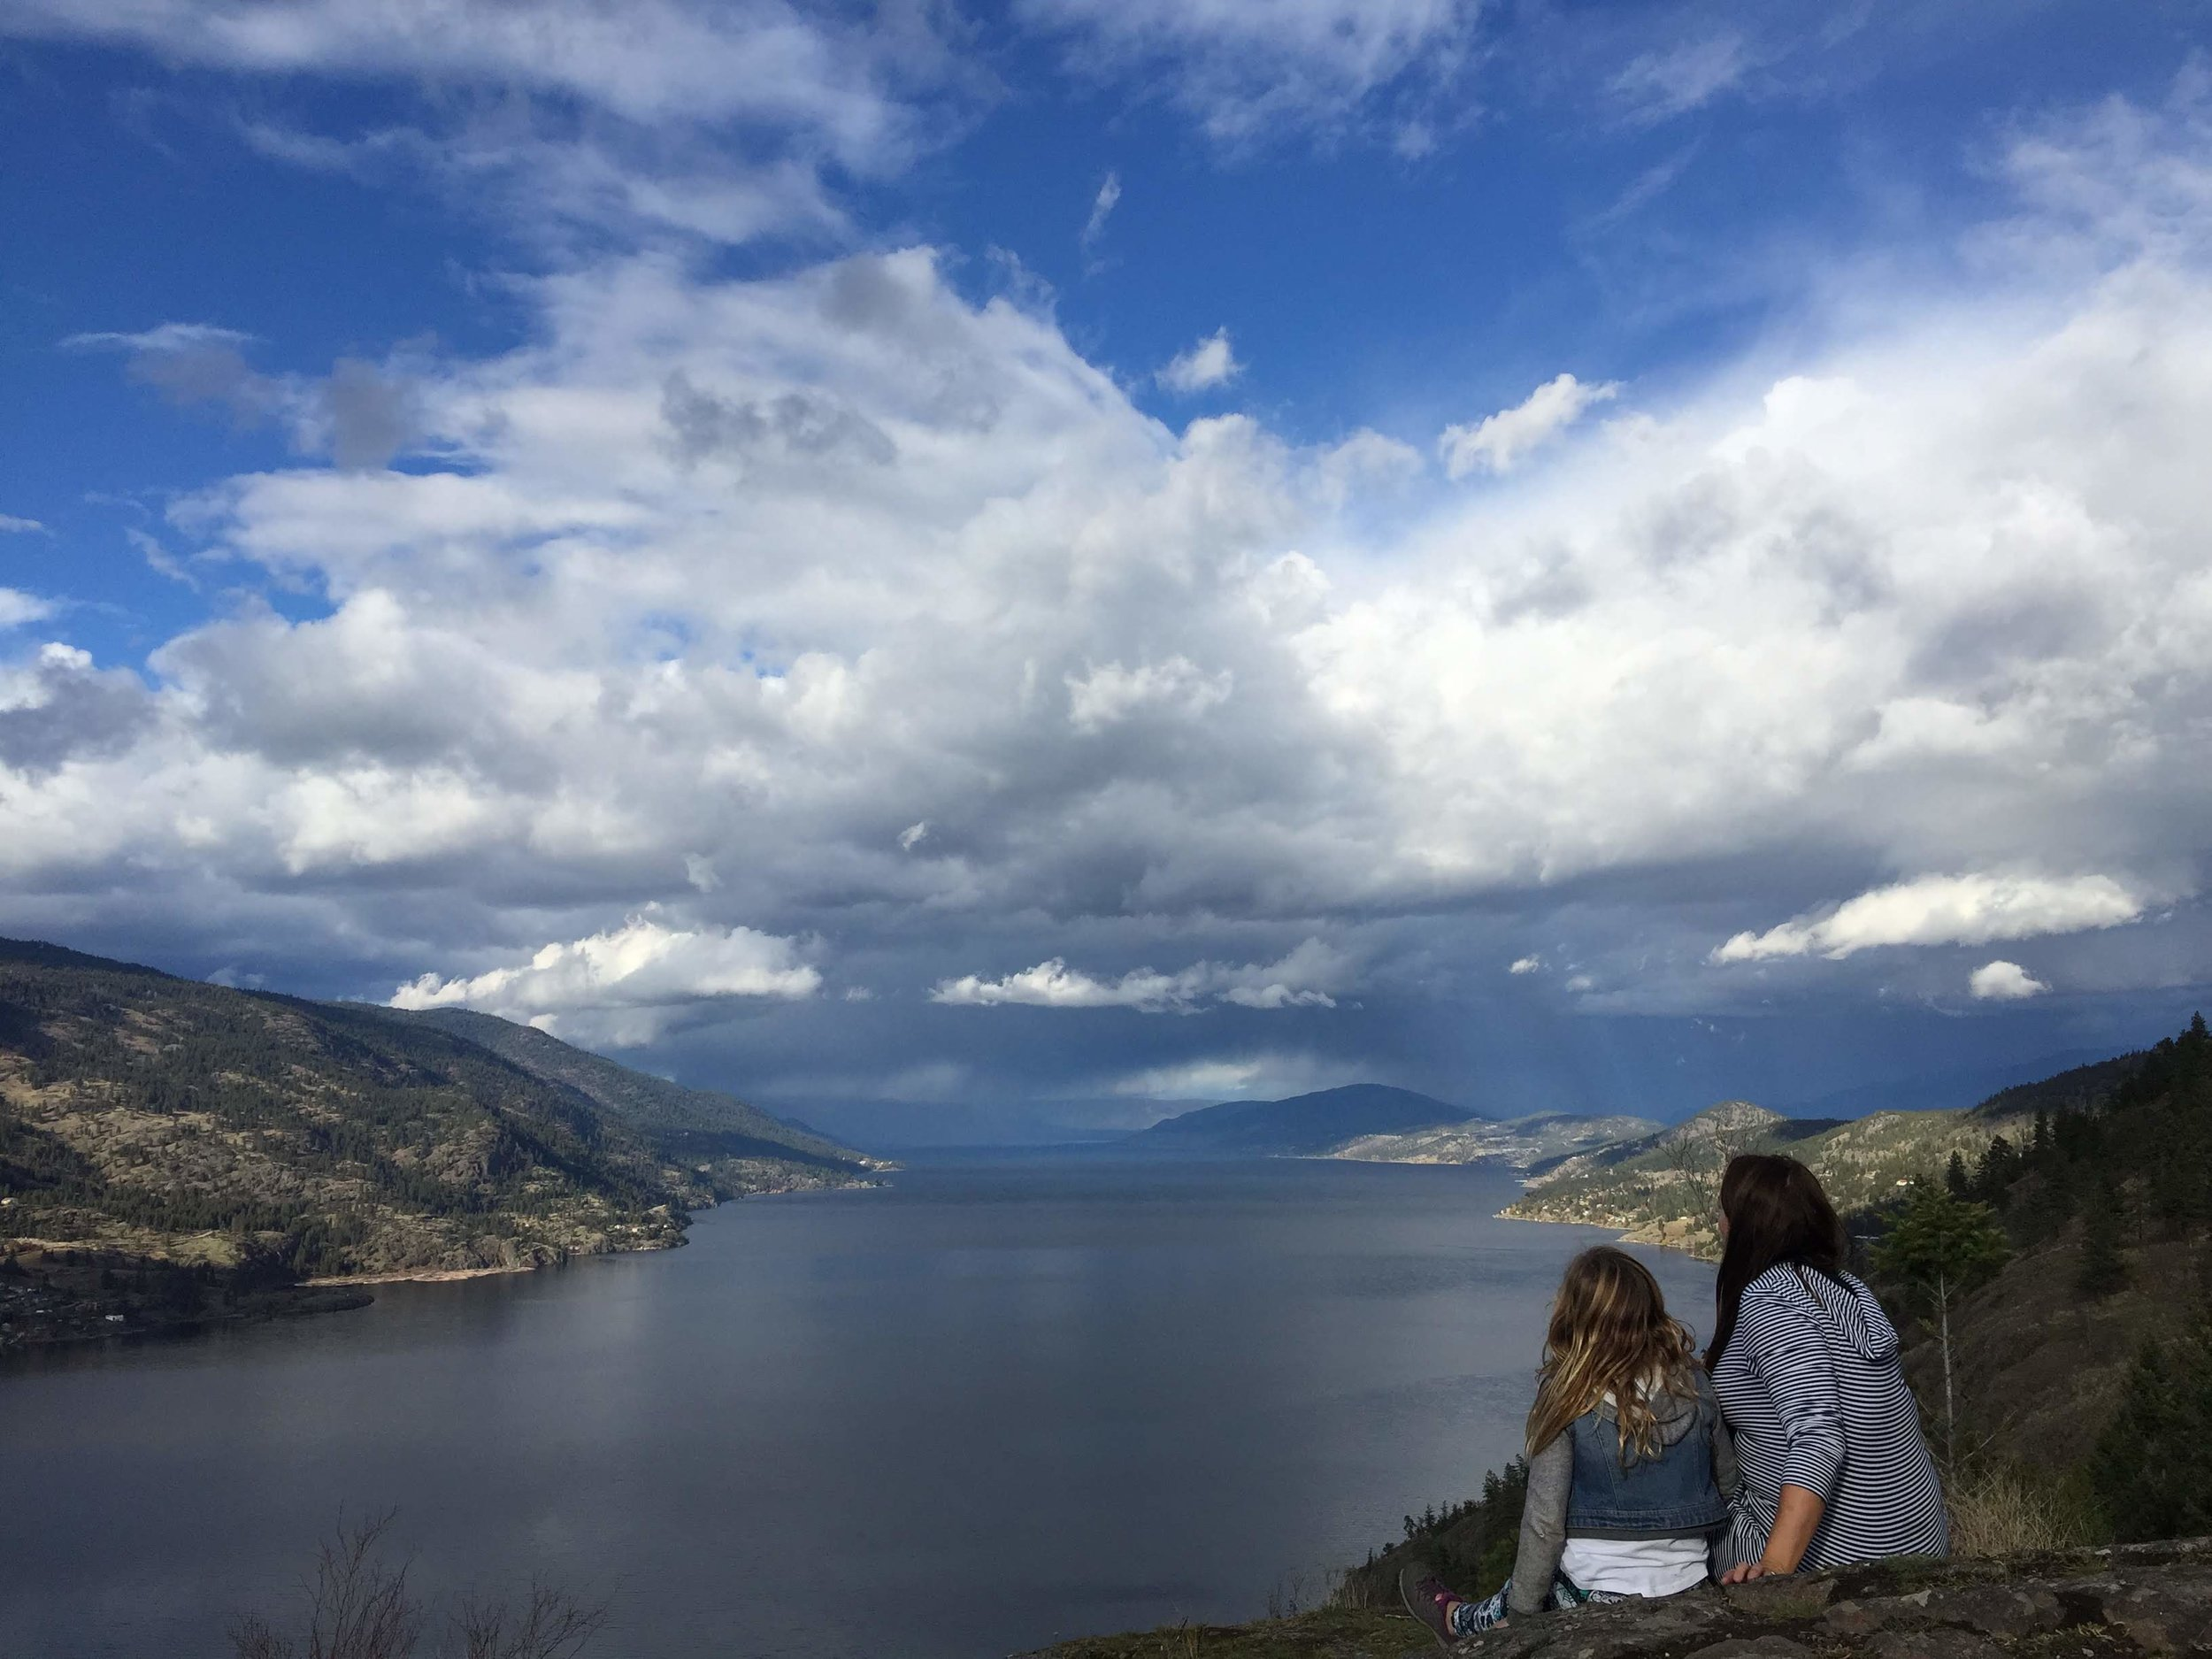 The View at the second lookout looking north along Okanagan Lake